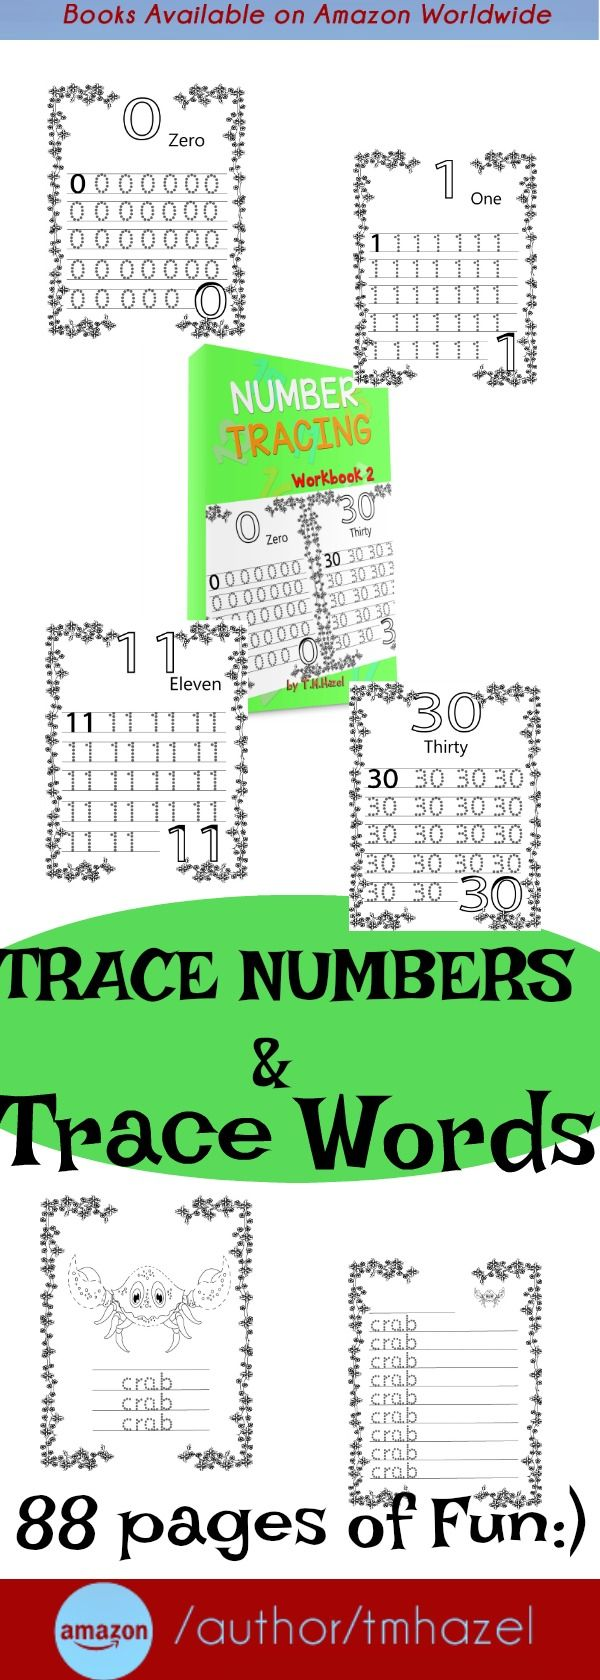 How To Trace Numbers and Words! Numbers, preschool handwriting, Colouring, Pre-School books, Preschool math, Learning Numbers, preschool counting, Homeschool, Fine Motor, Toddler Preschool, Toddler, Counting, Maths, Counting activities, numbers learning, kids activities, writing practice, numbers handwriting, numbers tracing,numbers pre-school, preschool, tracing ,handwriting ,colouring.